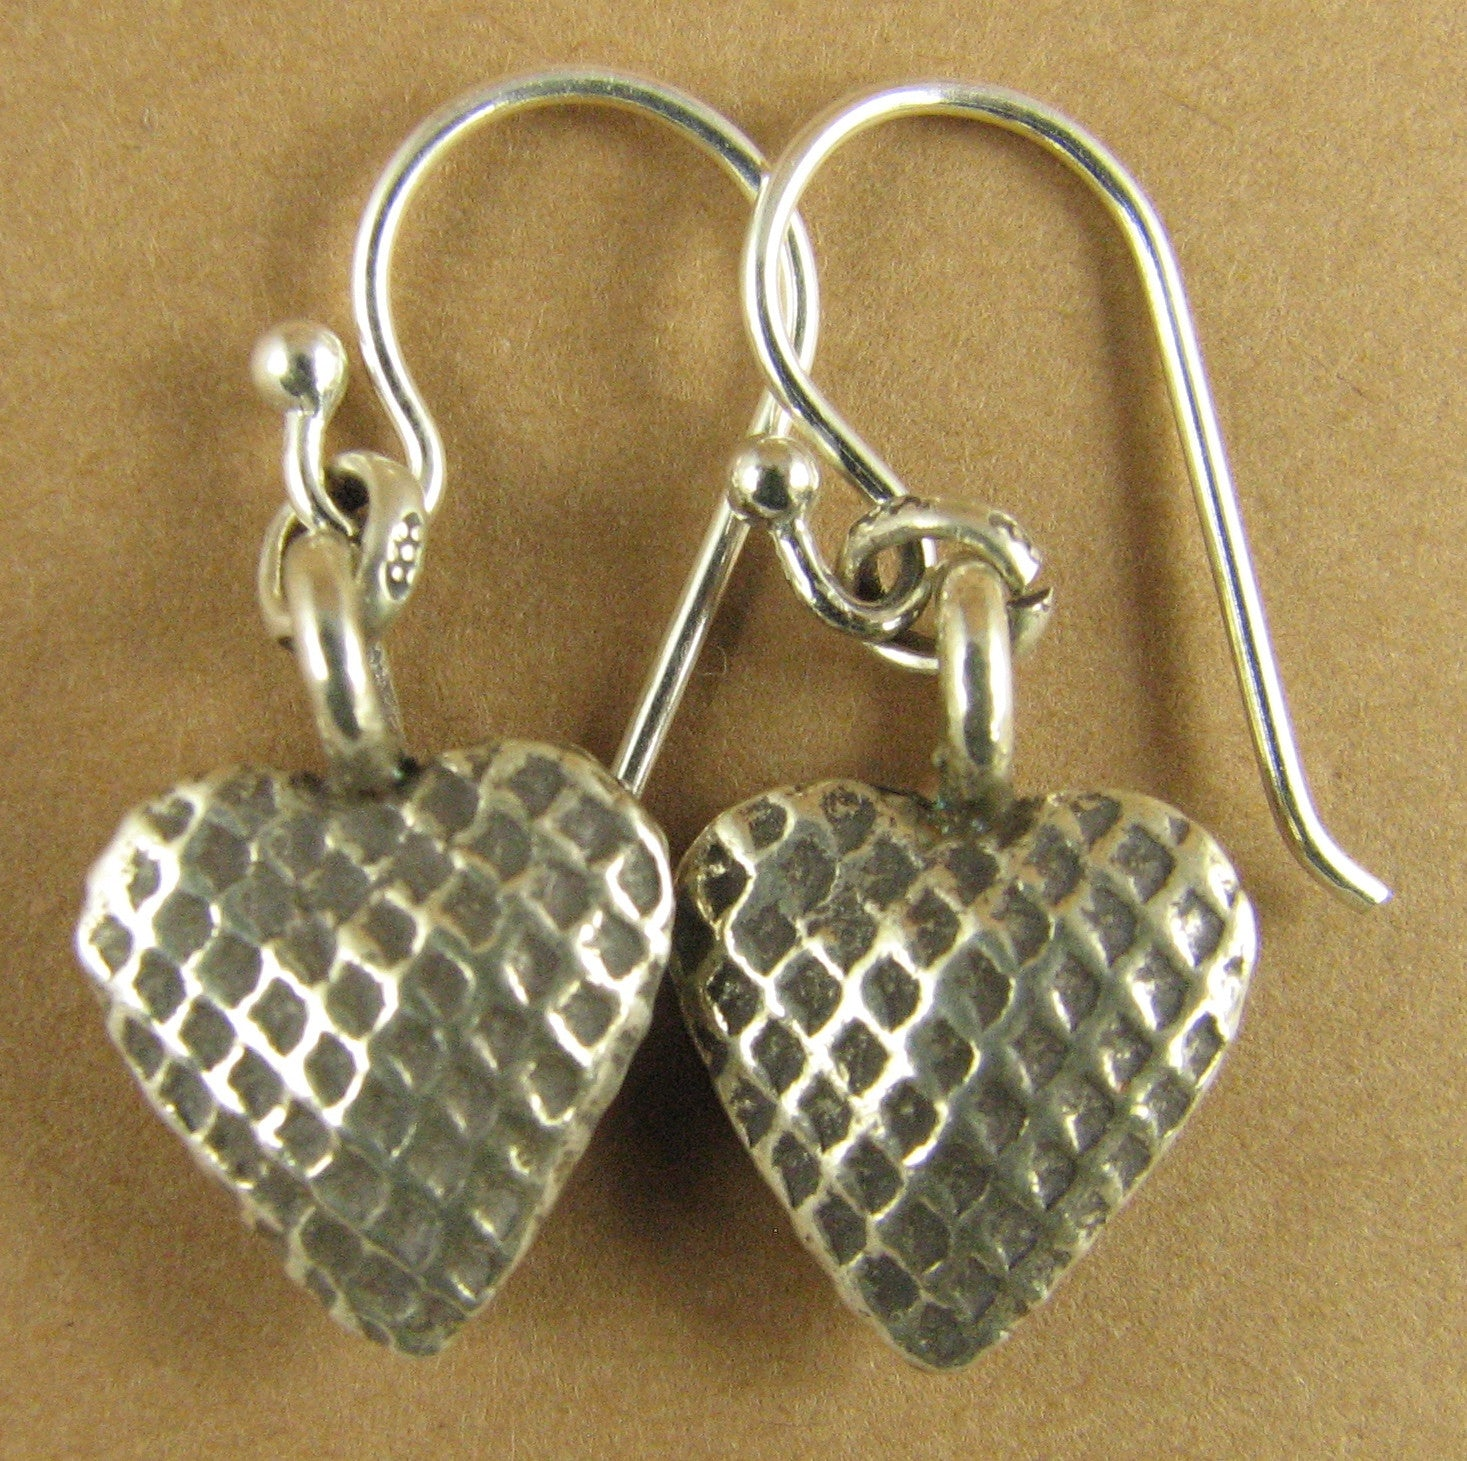 Heart earrings. Checked/criss-cross. Rounded. 2 sided. Fine & Sterling silver 925